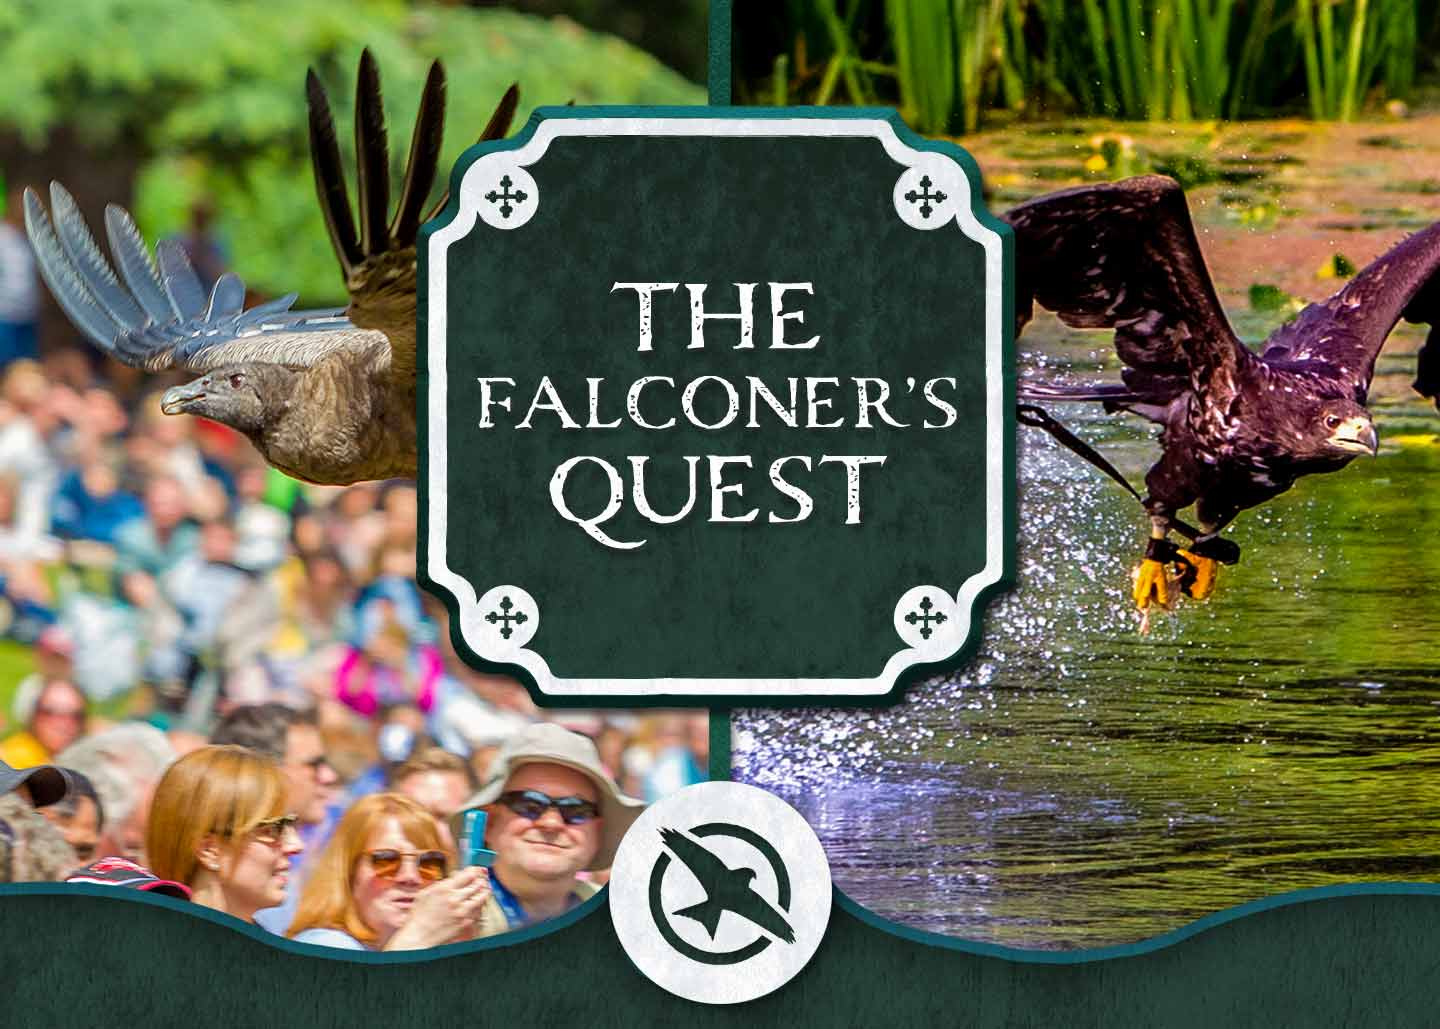 The Falconer's Quest at Warwick Castle